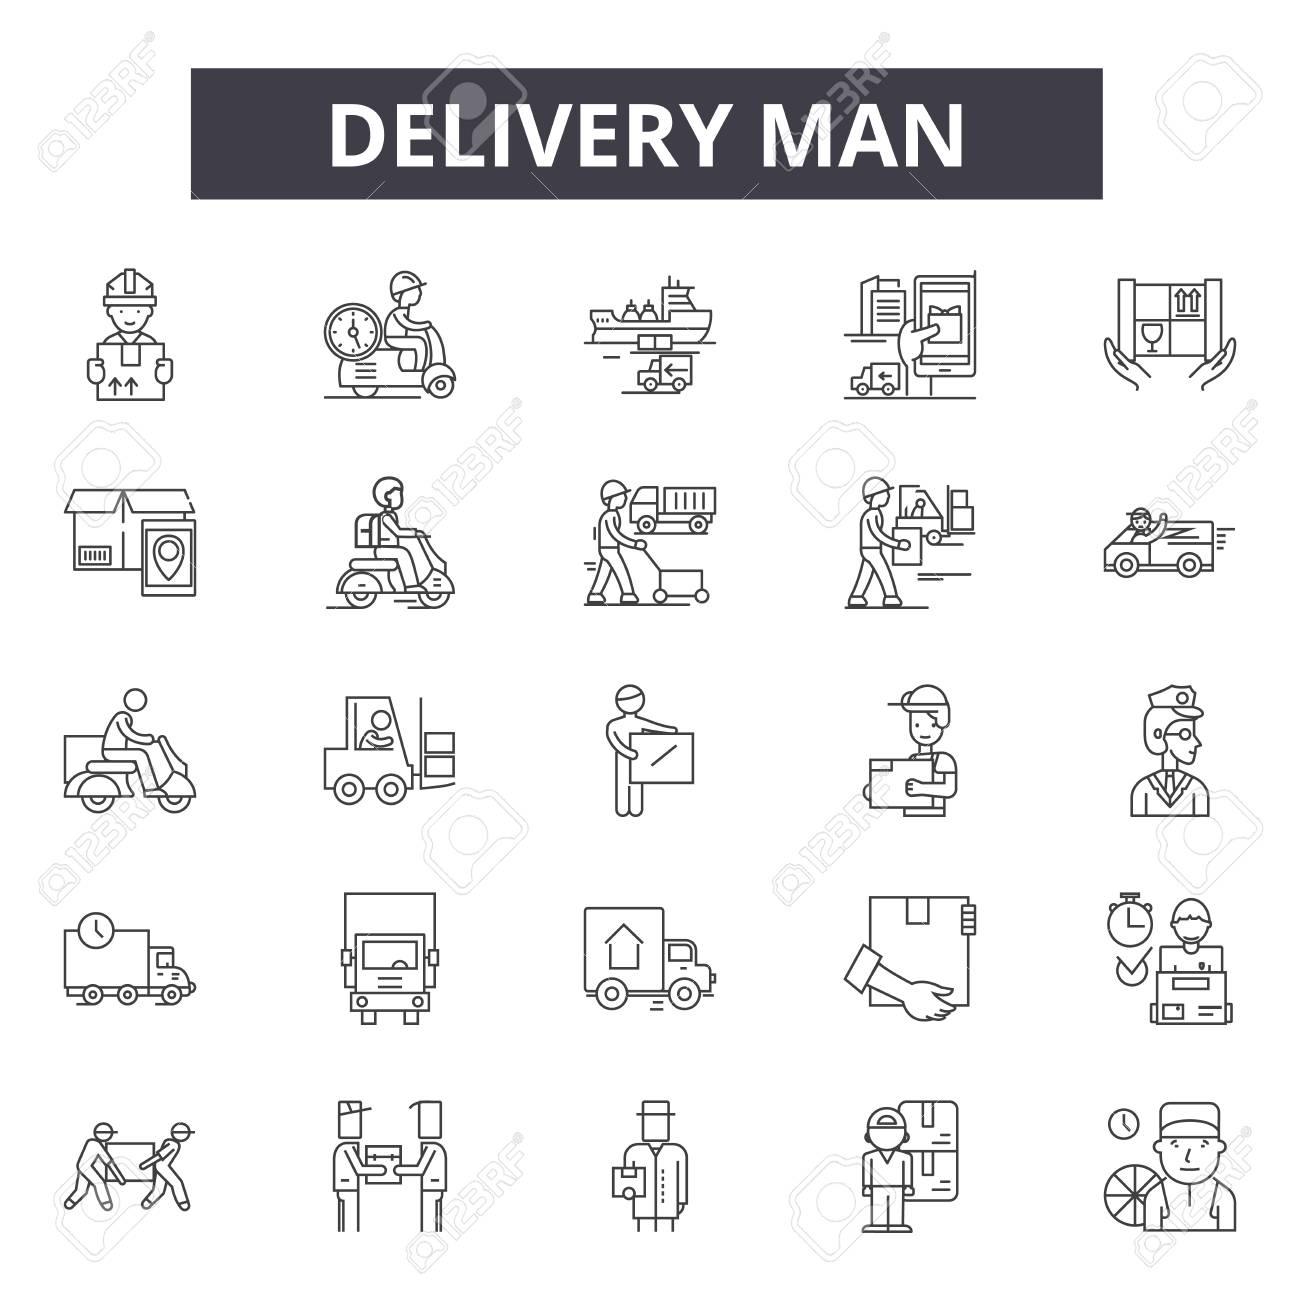 Delivery man line icons, signs set, vector. Delivery man outline concept illustration: man,delivery,service,box,courier,worker,package,job - 120895049